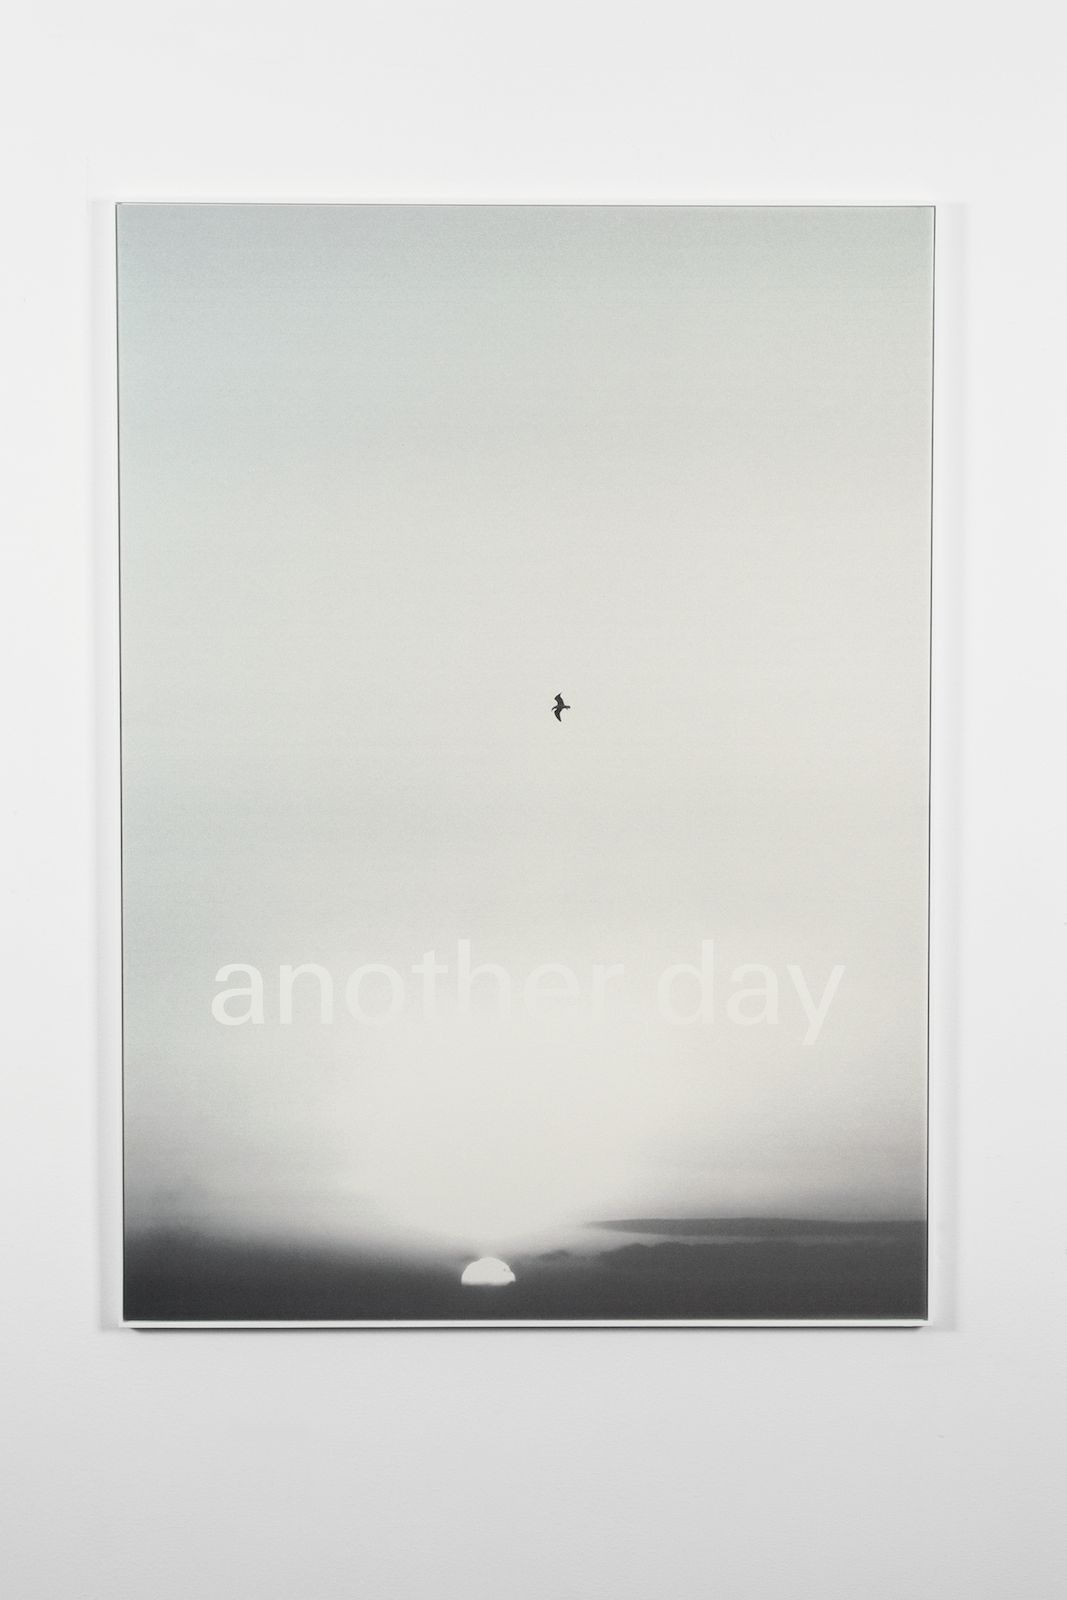 Another day, 2011, screen print on paper, frame, 110 x 80 cm, edition of 50